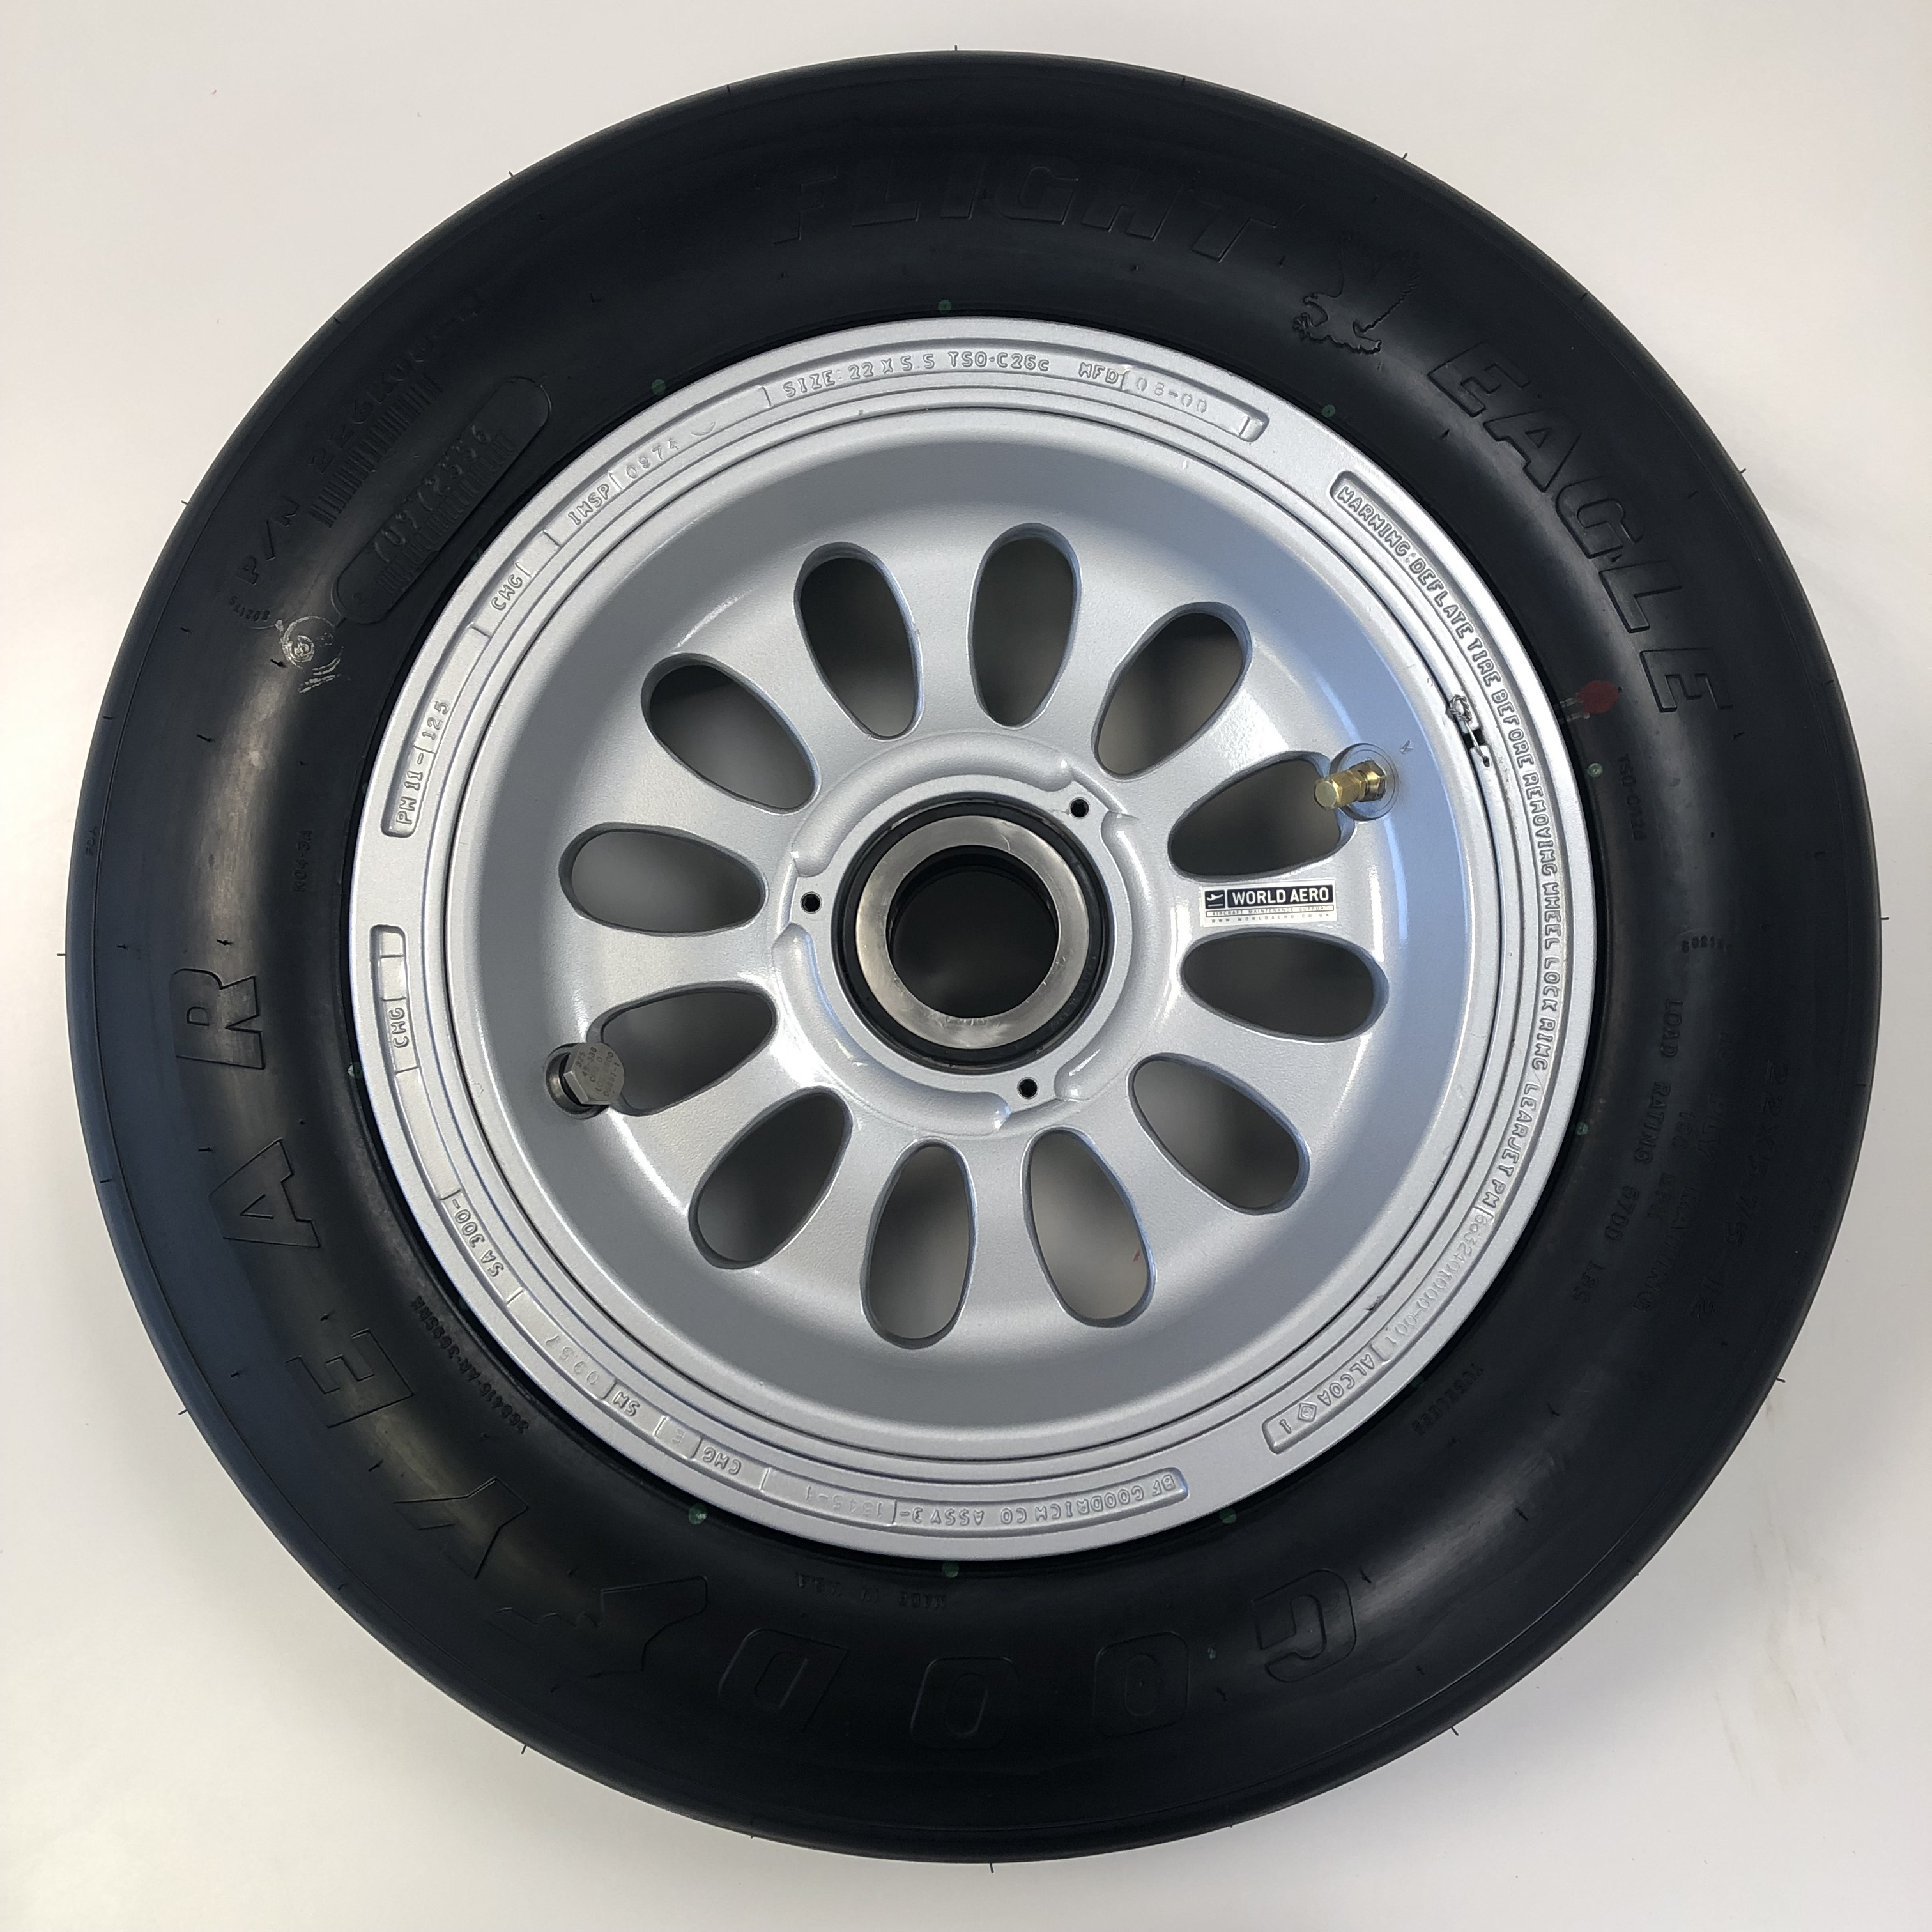 k600-85032-7 Bombardier Learjet 40 45 75 wheel